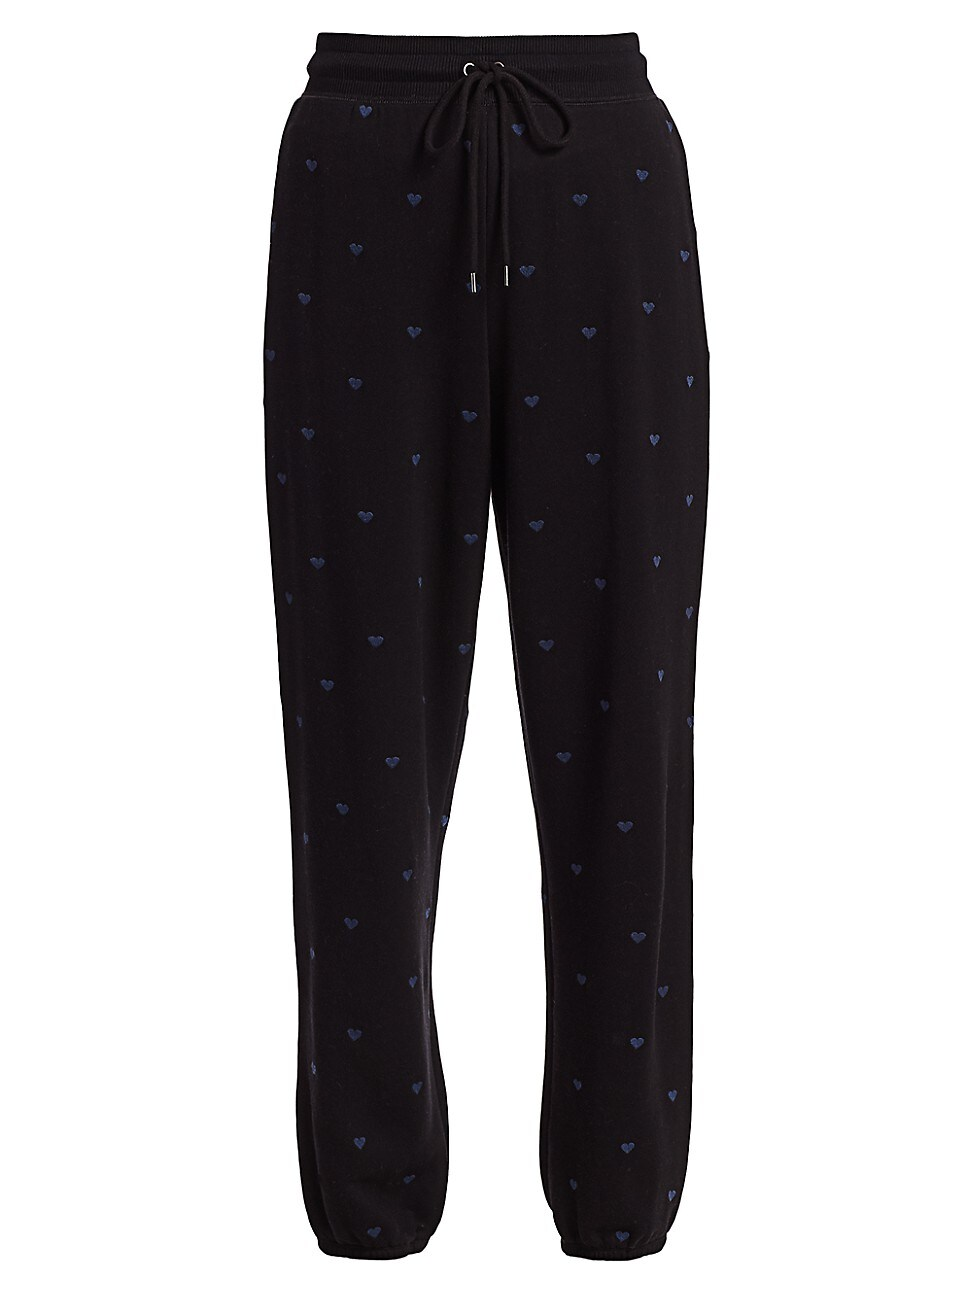 SPLENDID WOMEN'S XS & OS EMBROIDERED JOGGERS